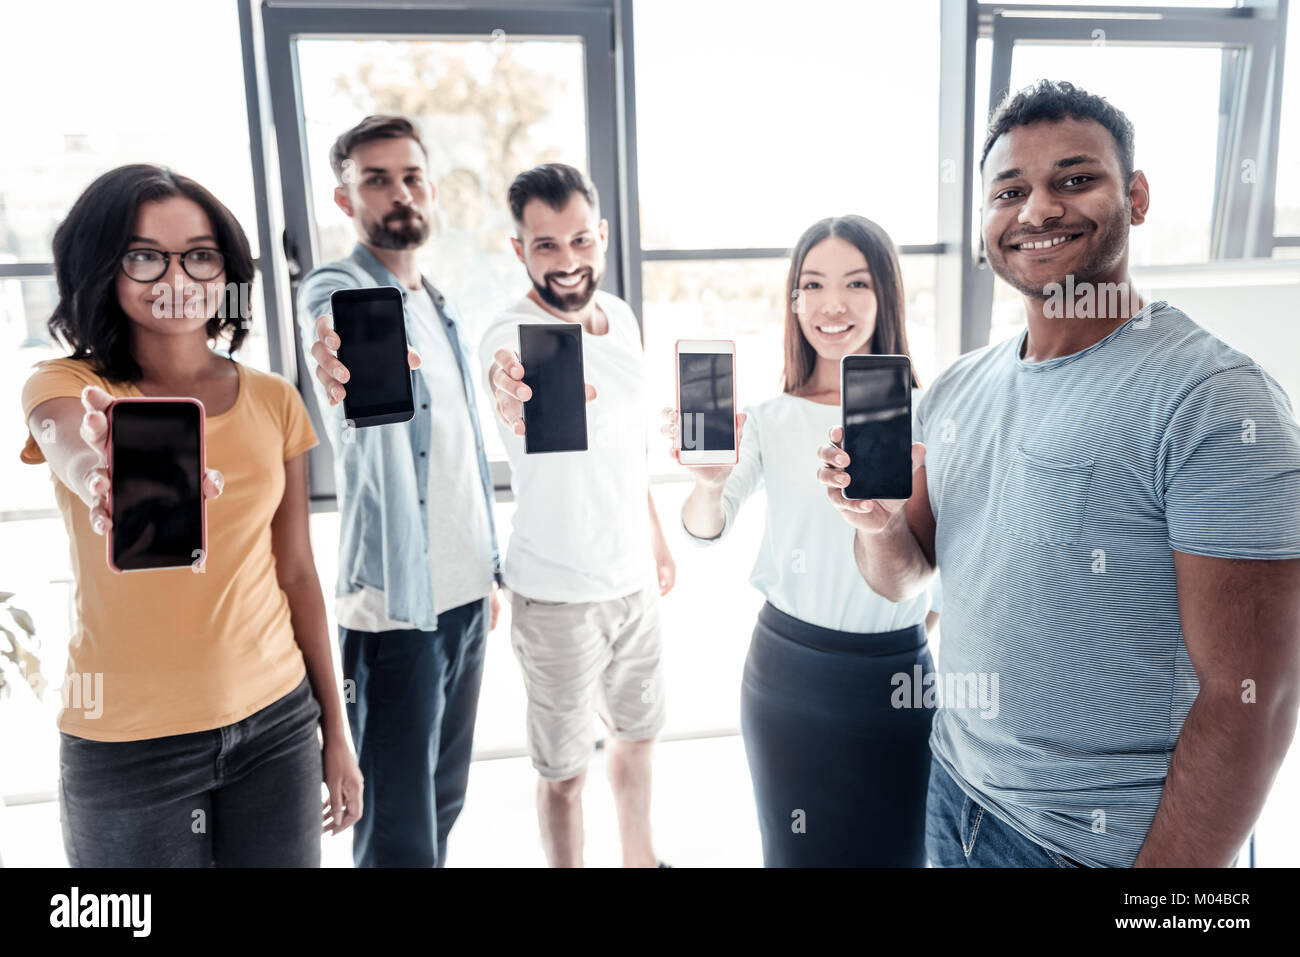 Happy millennial people demonstrating their smartphones - Stock Image